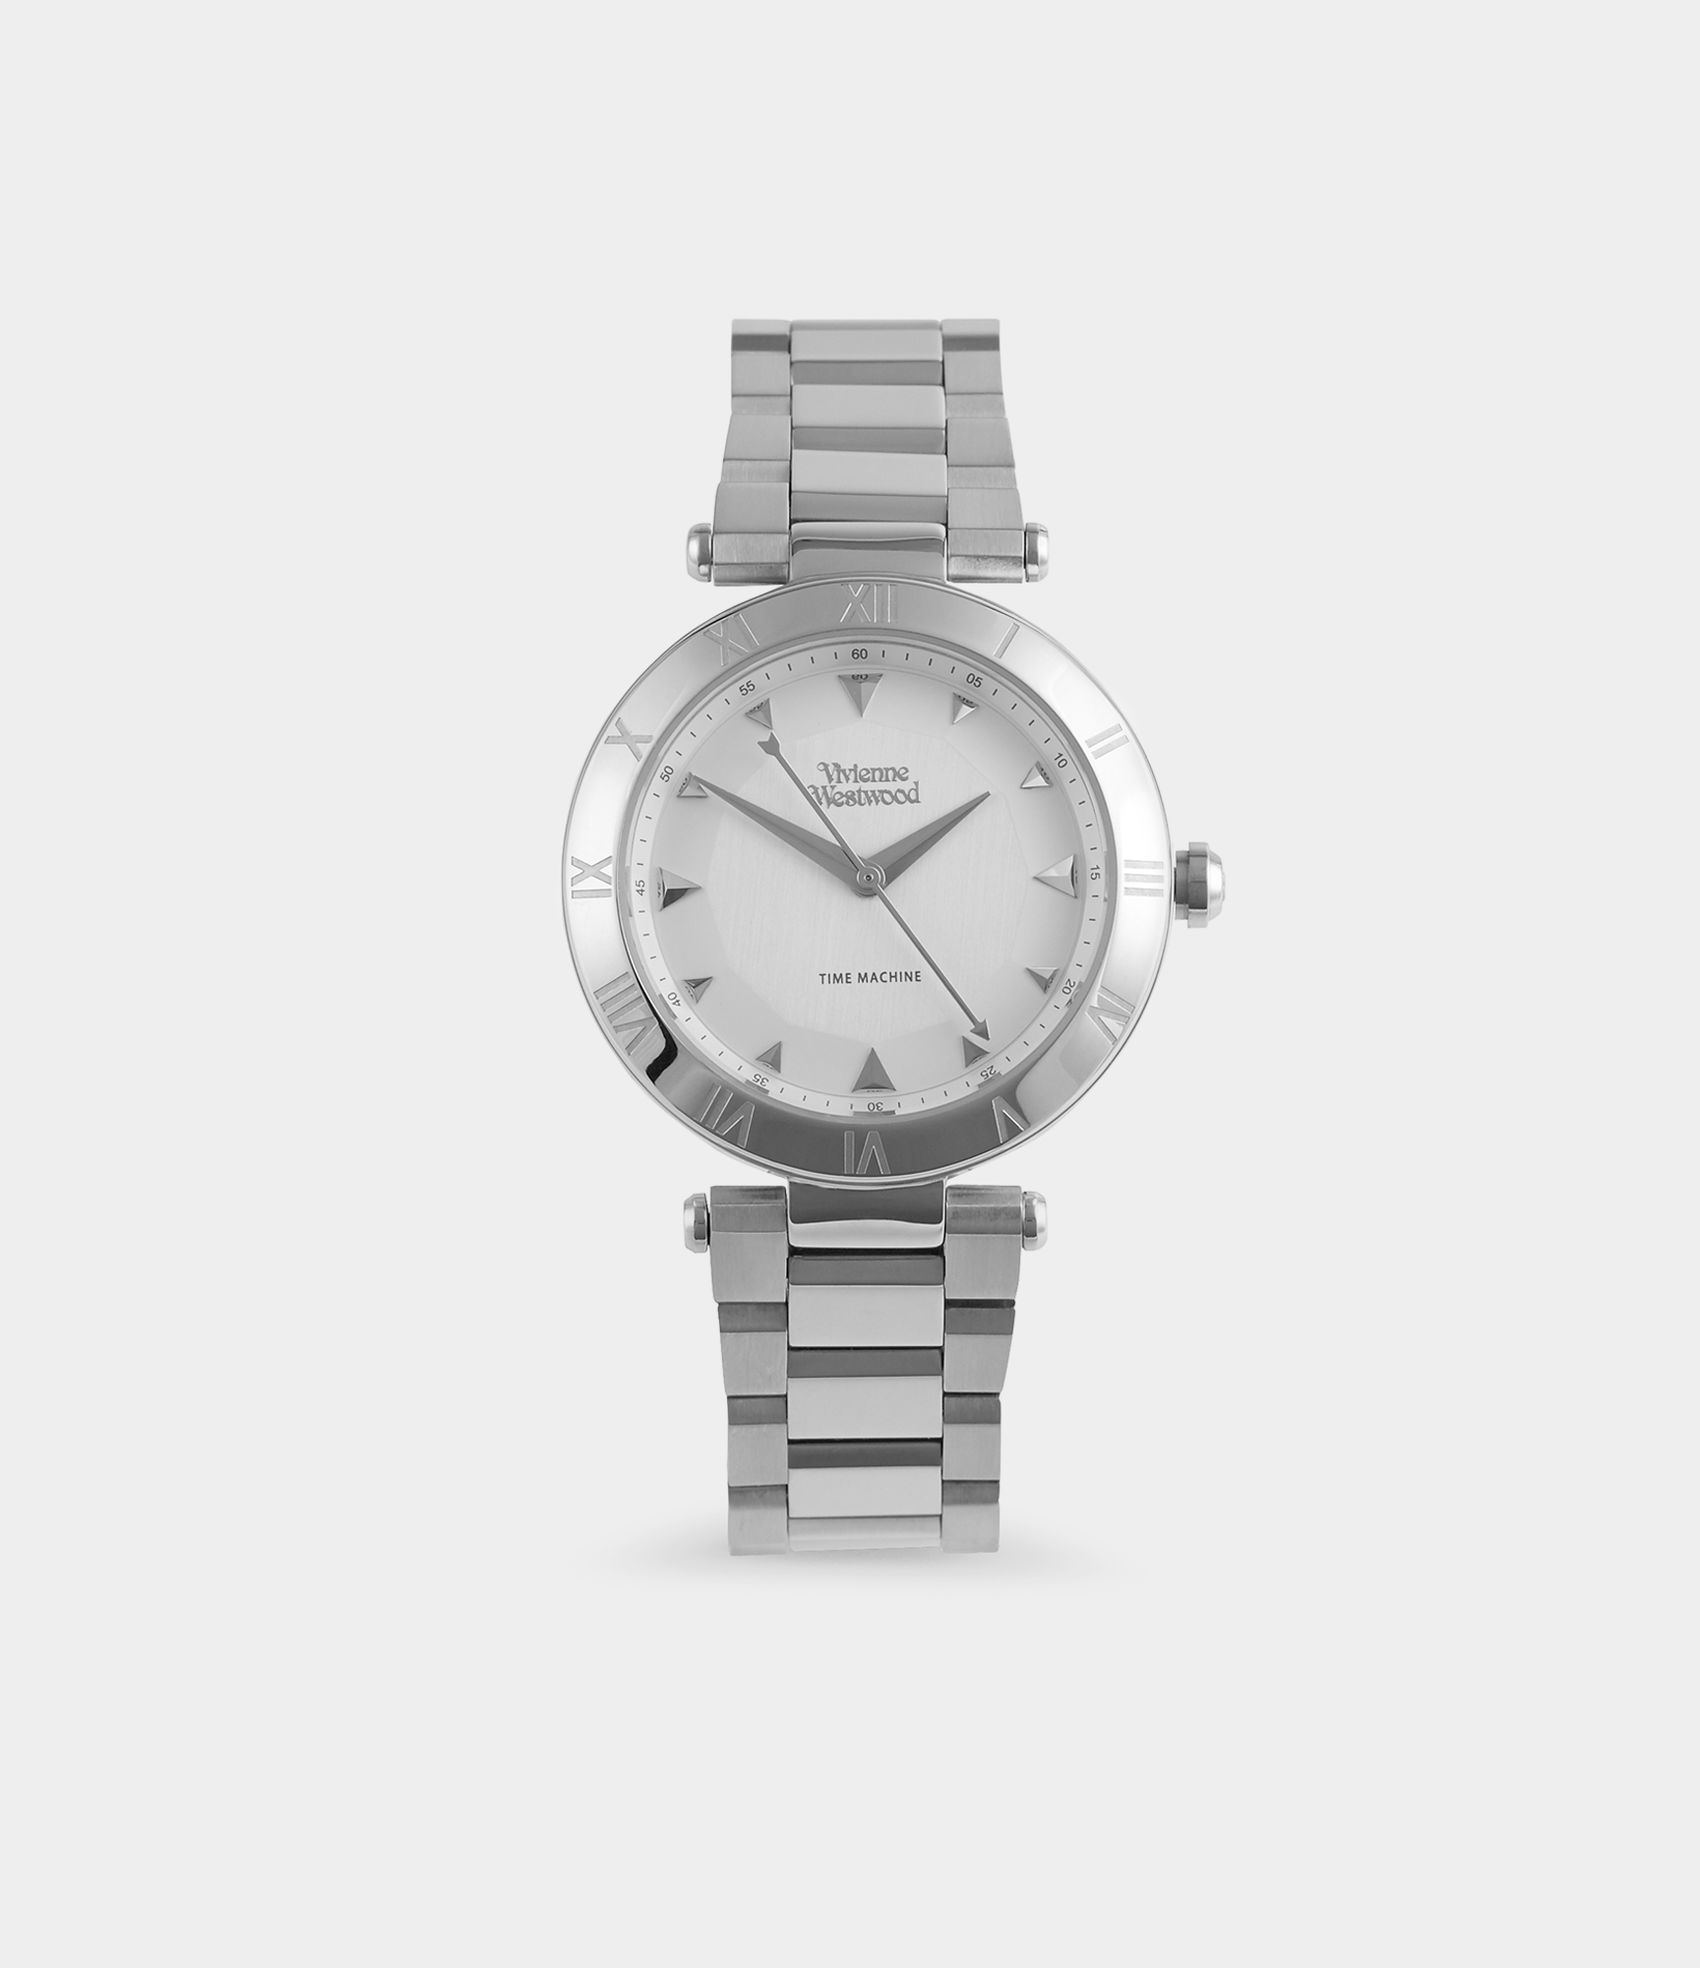 Vivienne Westwood MONTAGU WATCH SILVER - Click Image to Close